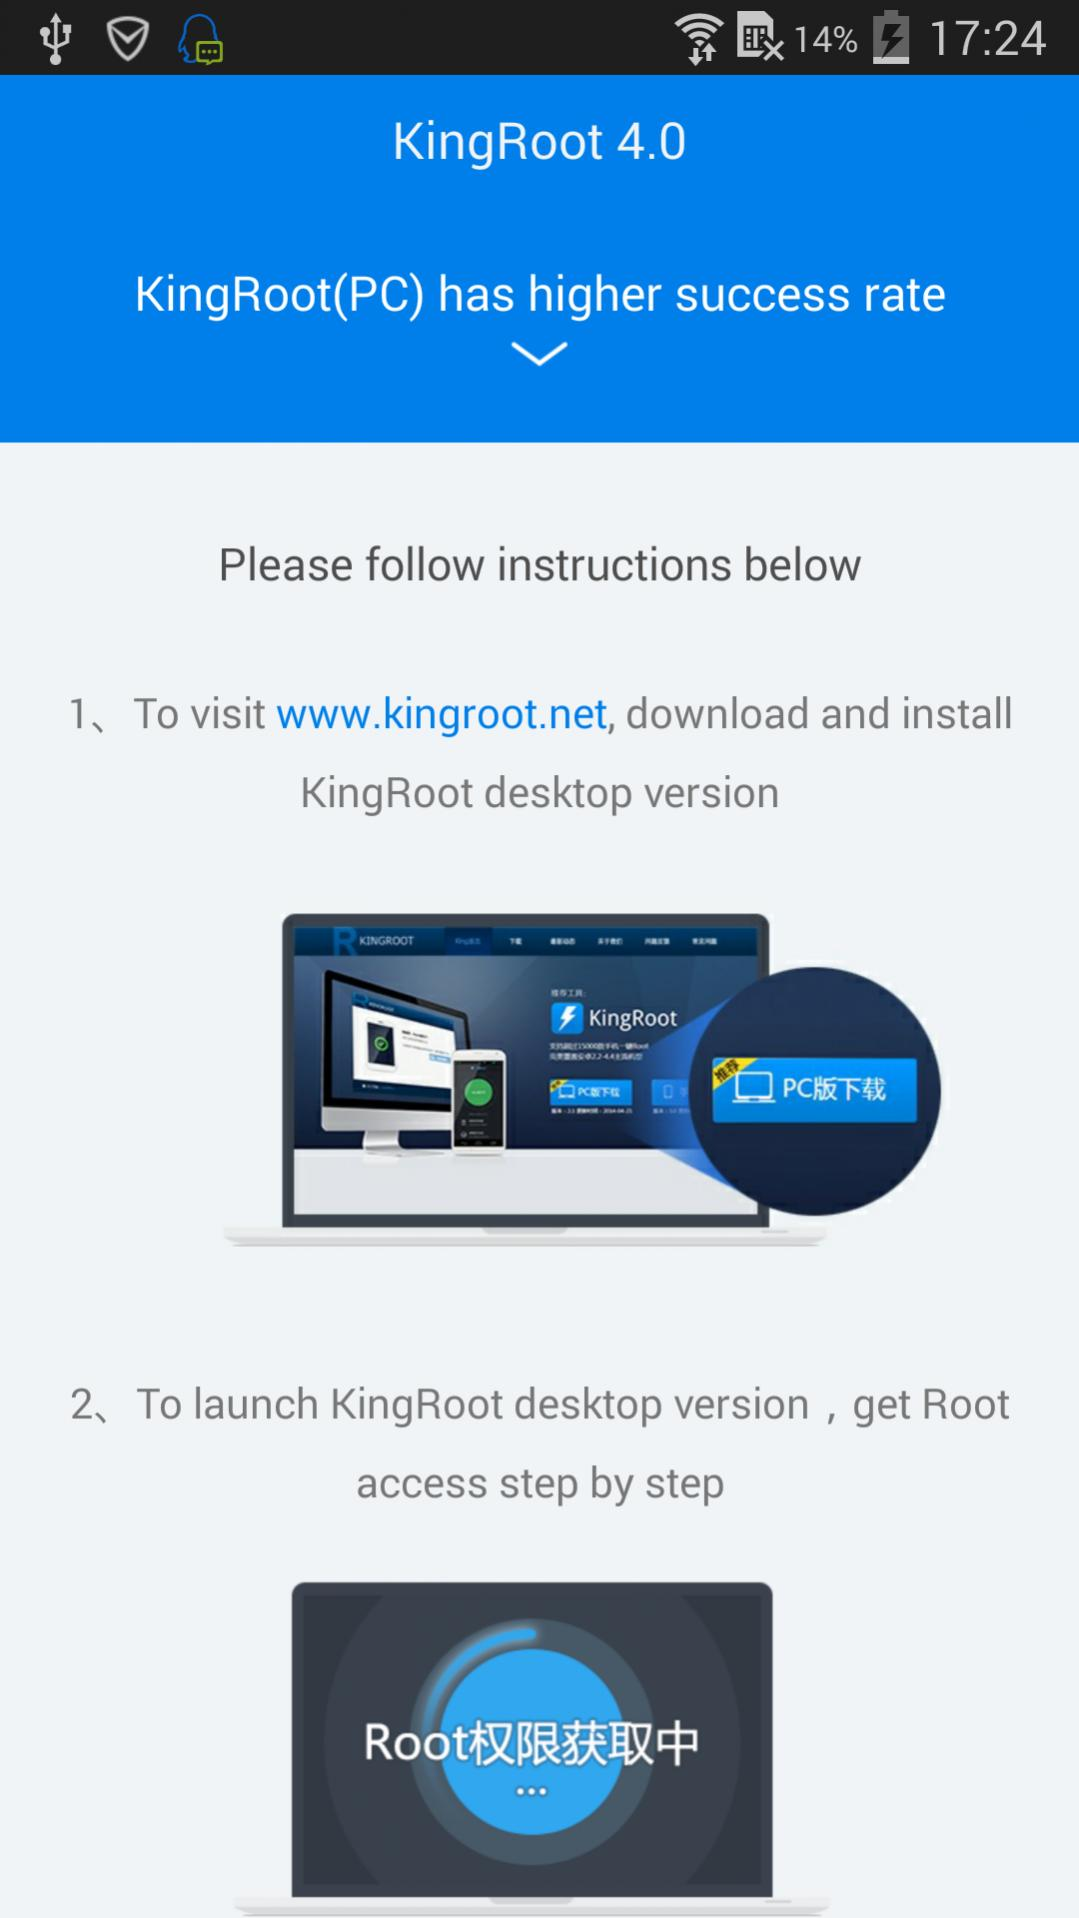 kingroot apk4fun download